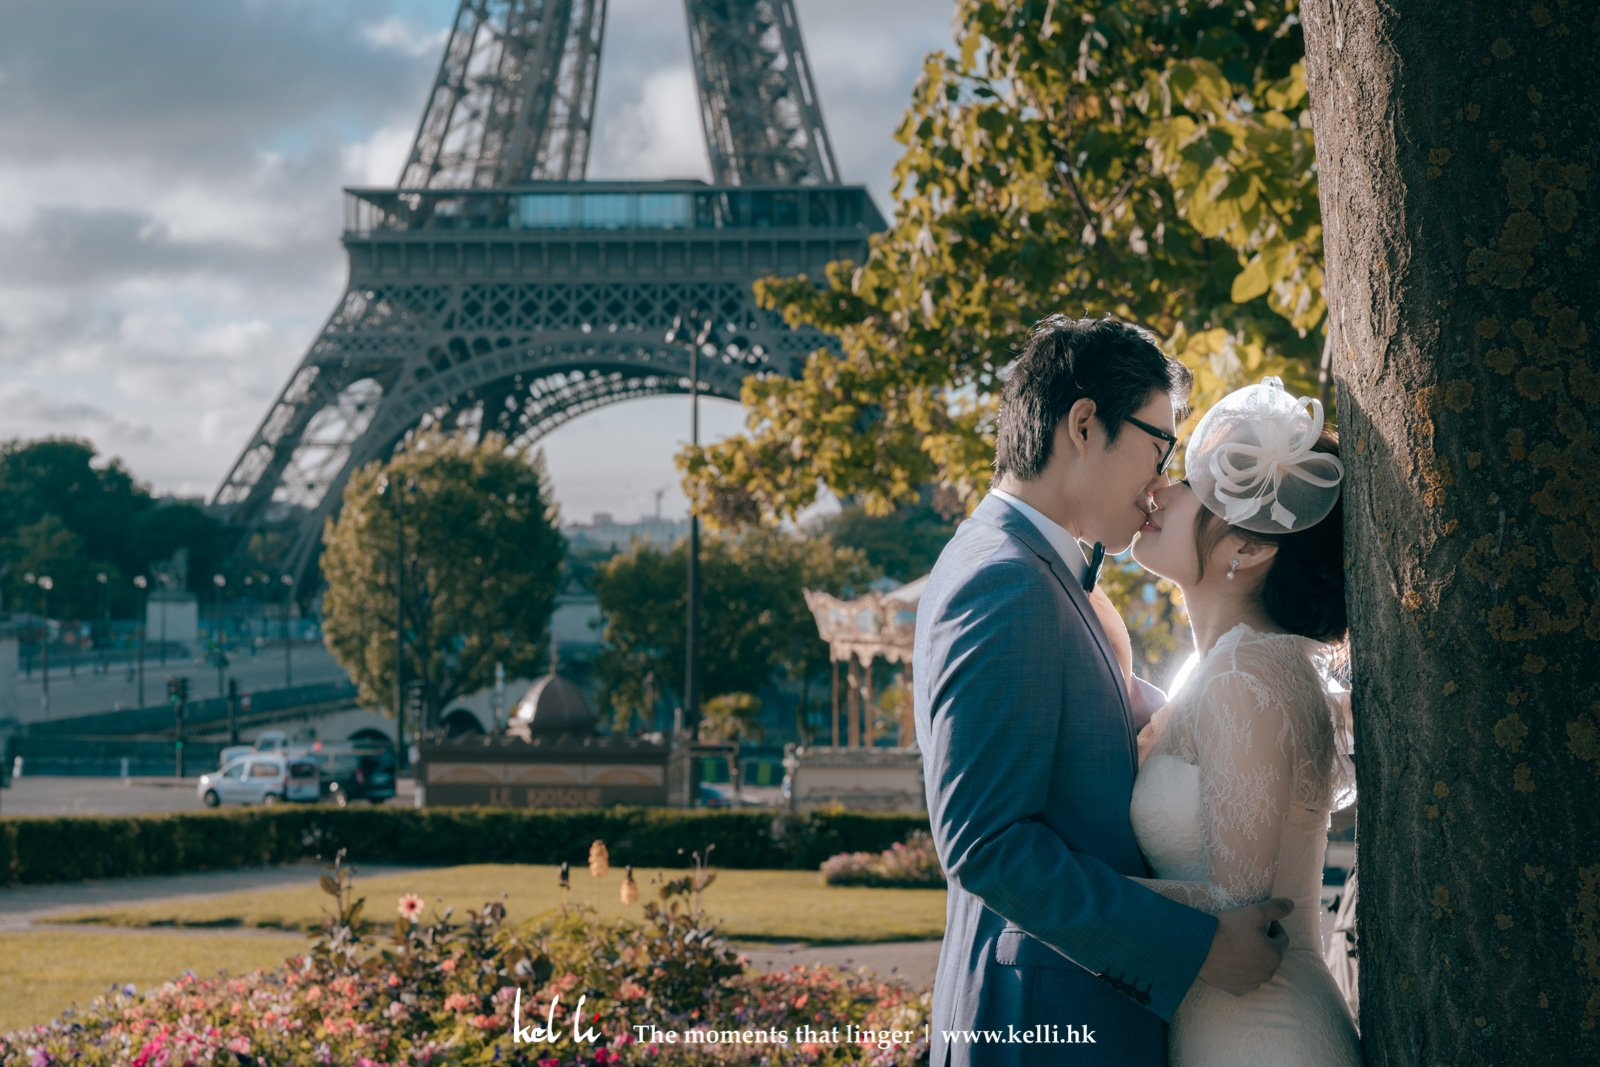 新人已沈醉於巴黎鐵塔下 Prewedding under the Paris Effel Tower